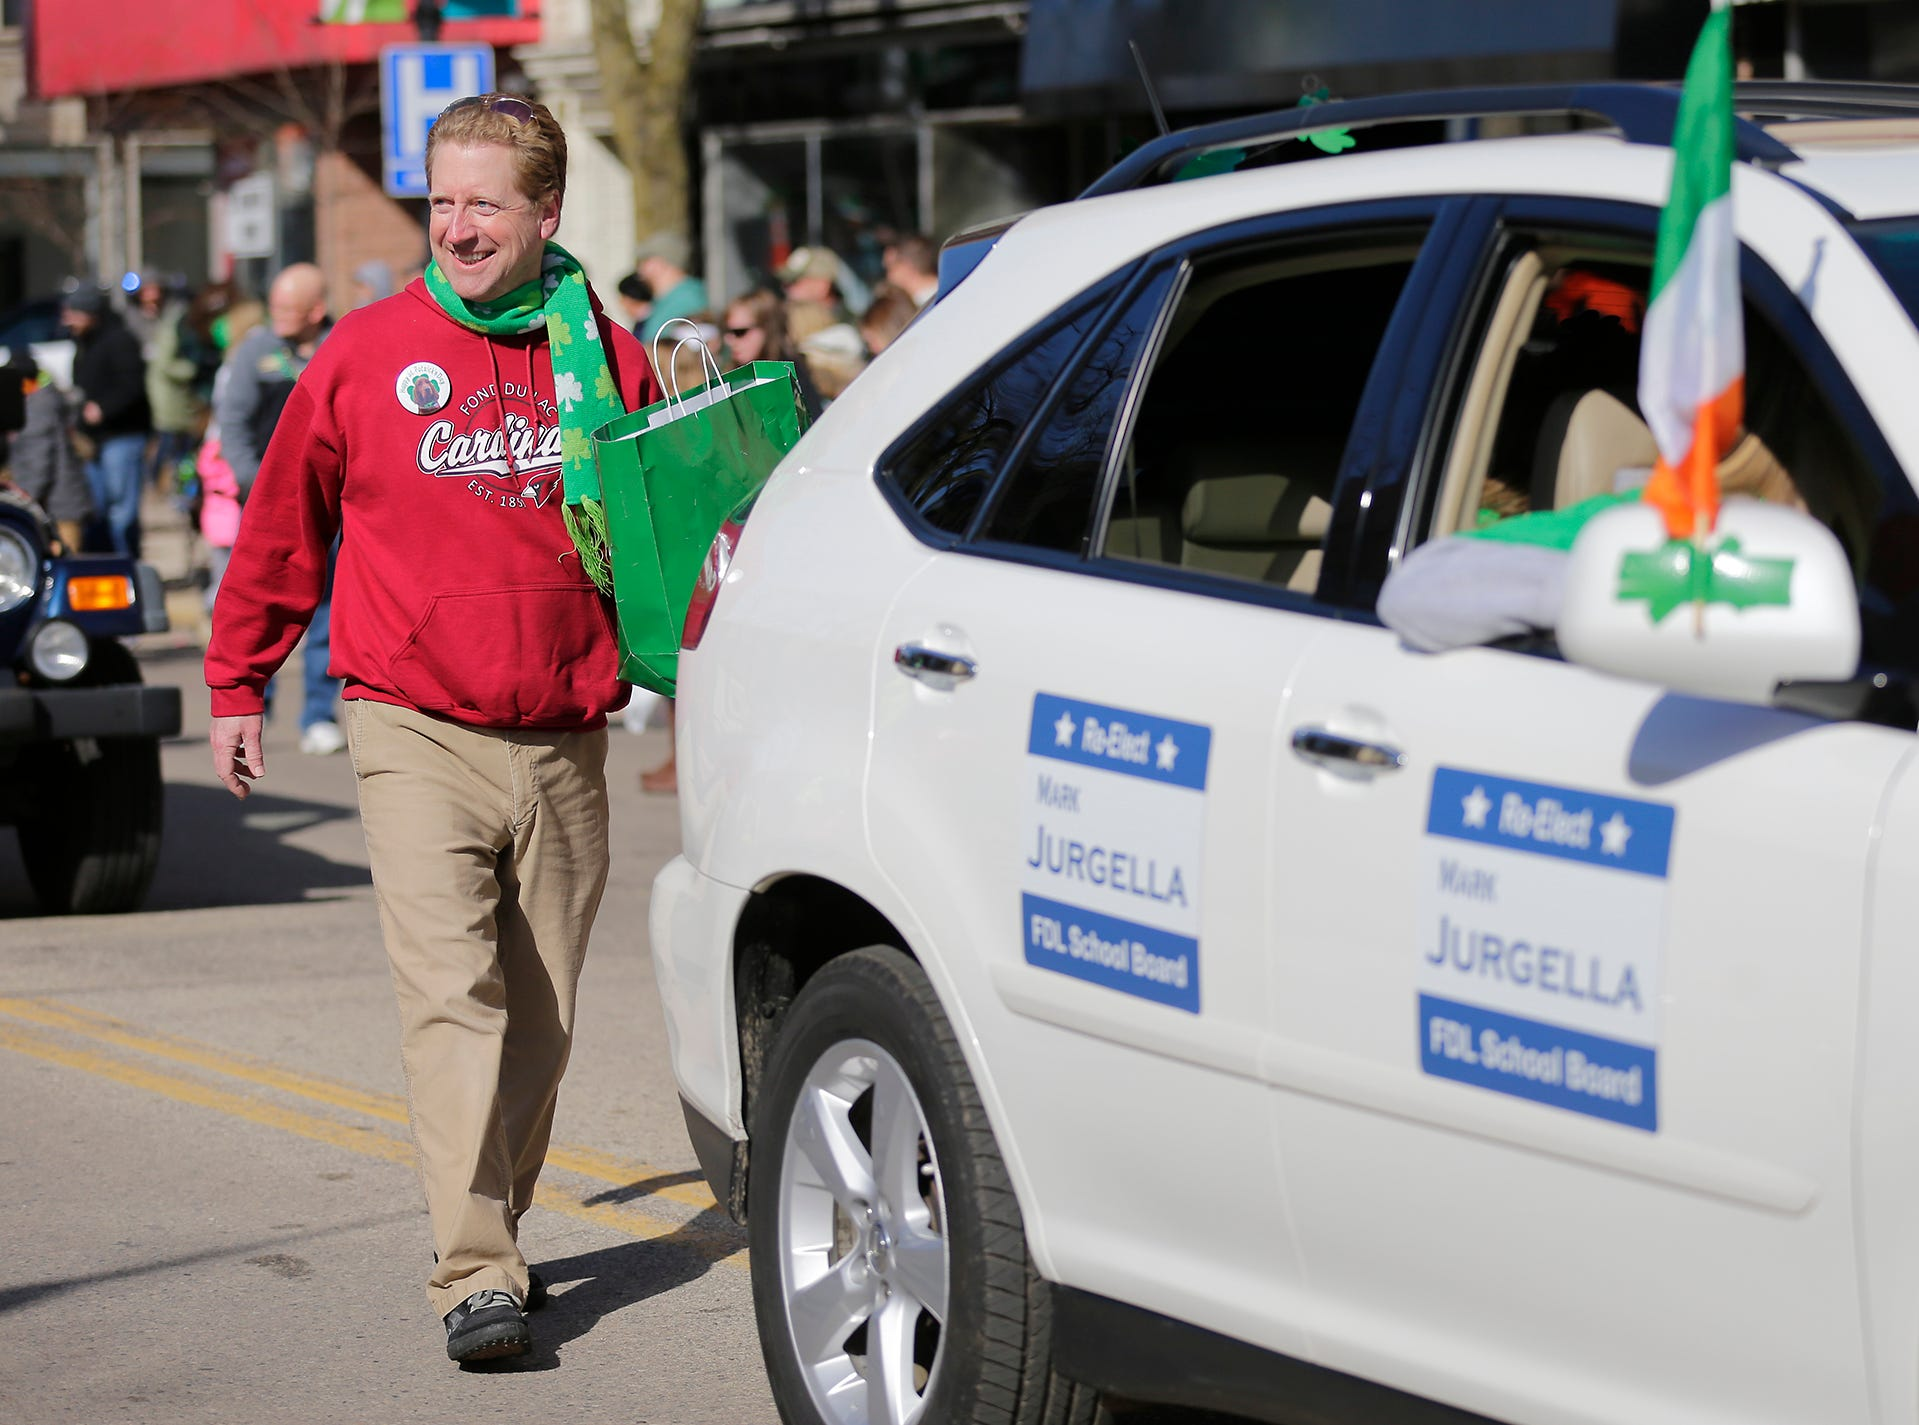 Mark Jurgella participated in the City of Fond du Lac St. Patrick's Day Parade Saturday, March 16, 2019 on Main Street in downtown Fond du Lac. Hundreds of people lined the street to watch over 50 parade participants. Doug Raflik/USA TODAY NETWORK-Wisconsin